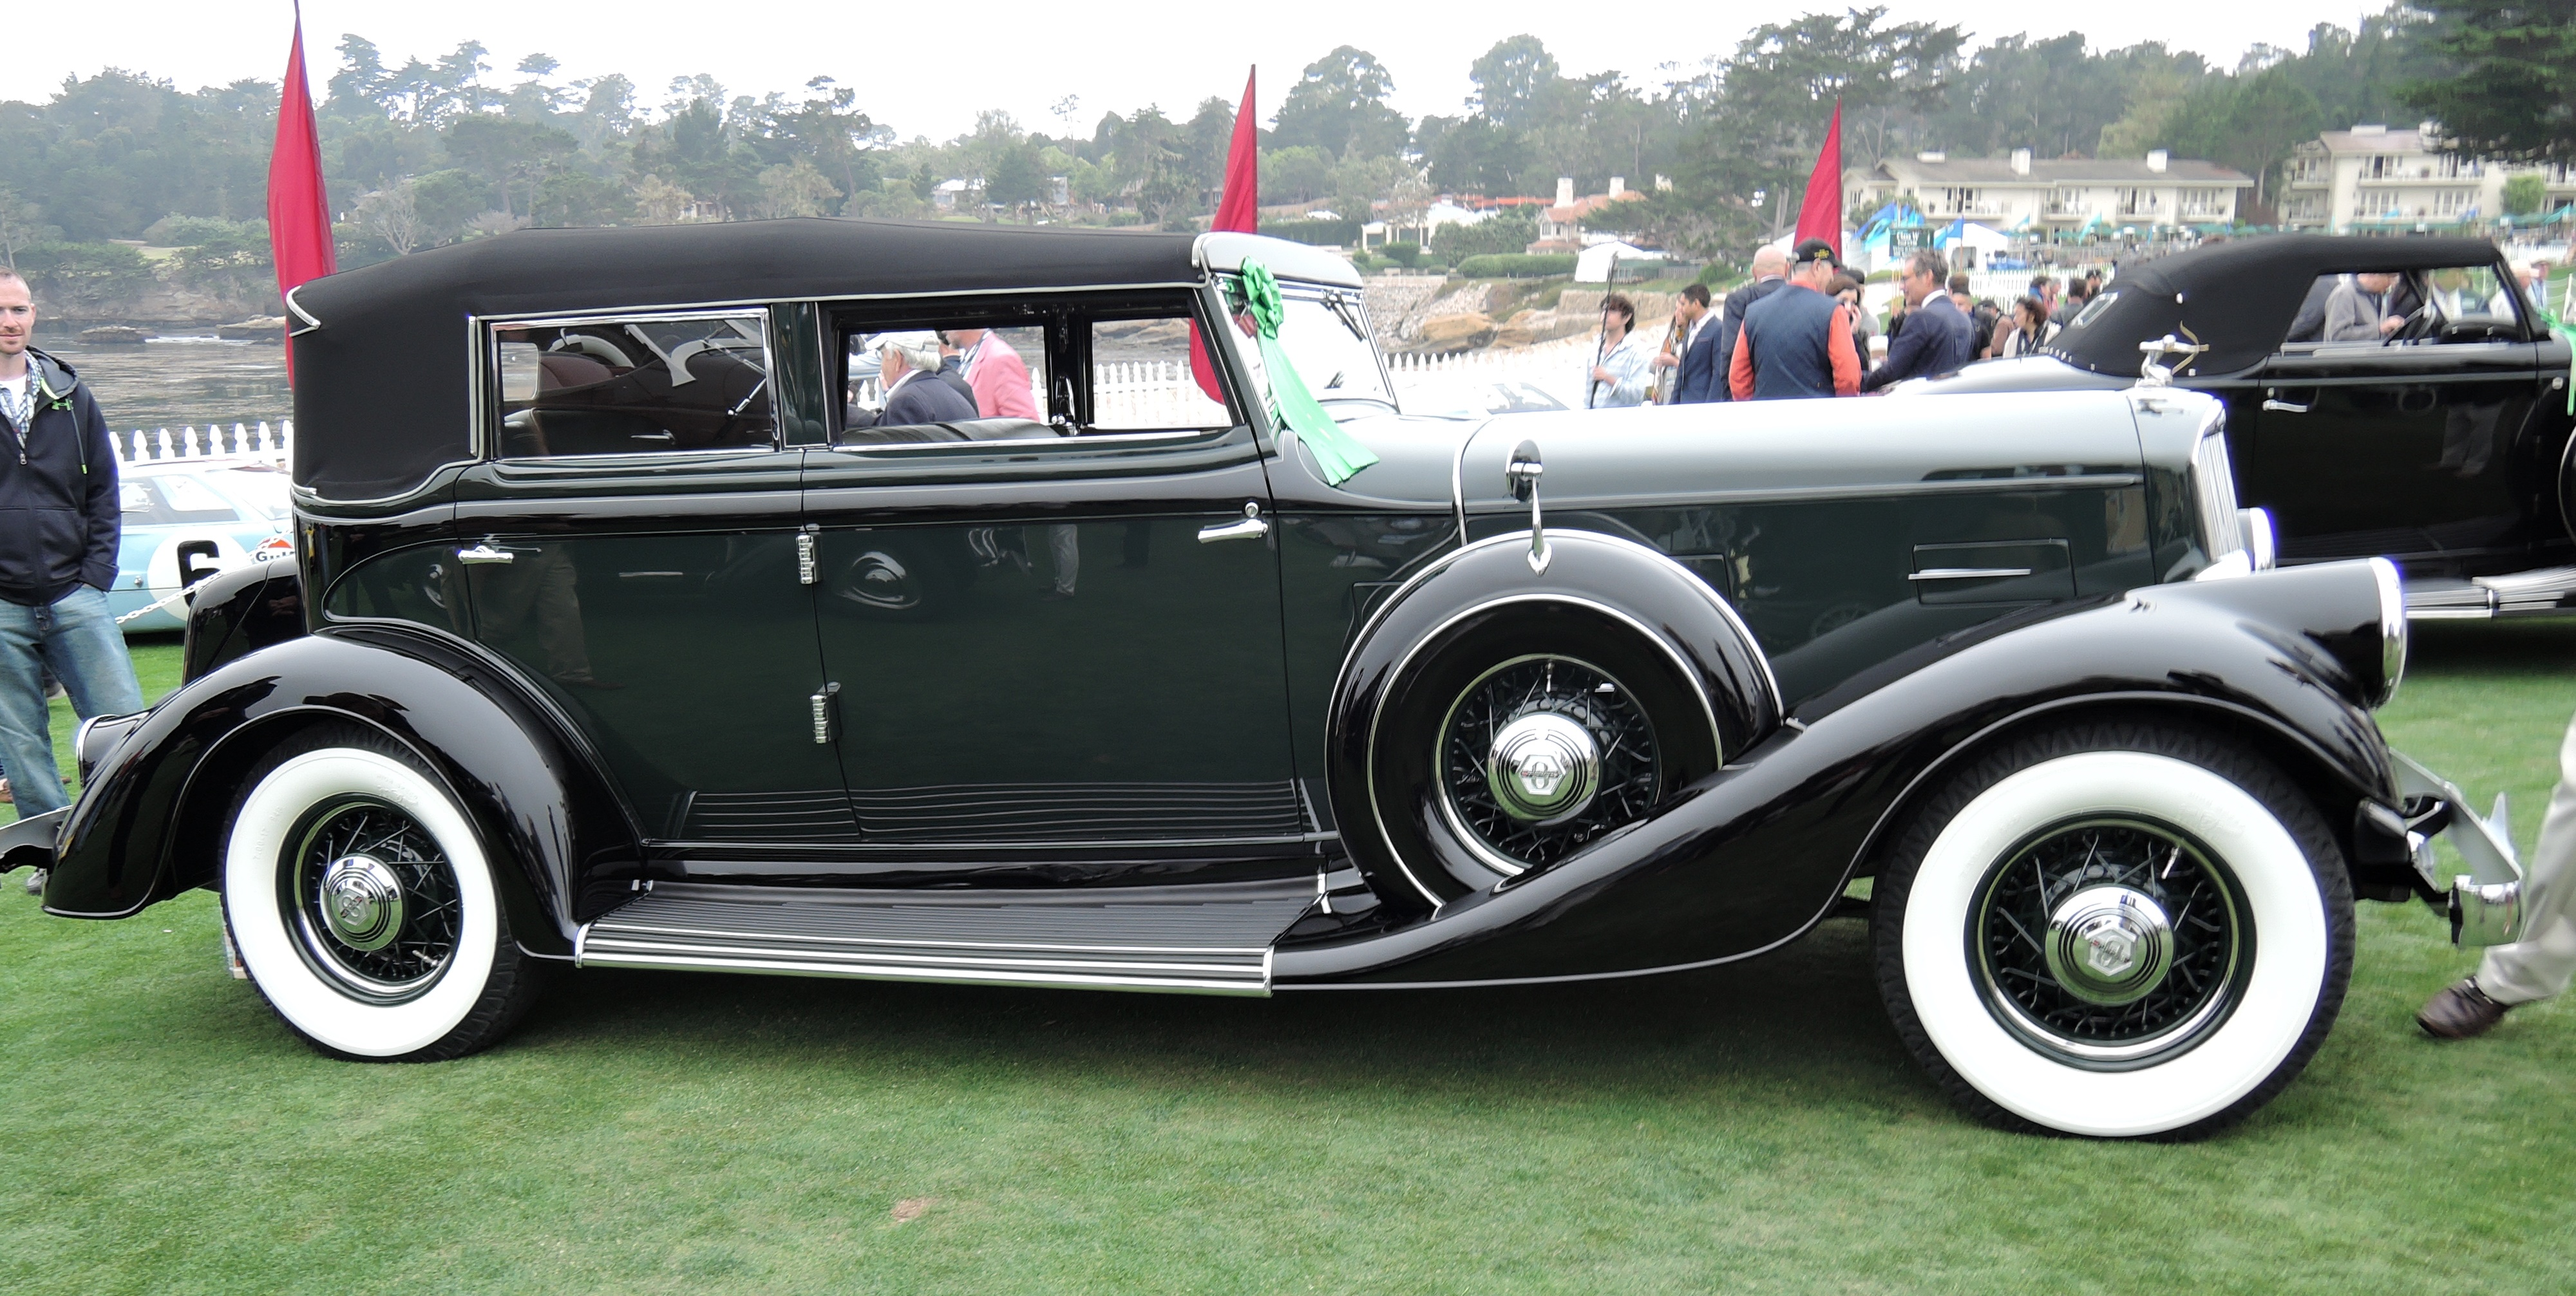 green/black 1934 Pierce Arrow 840A LeBaron Convertible Sedan - Pebble Beach Concours d'Elegance 2016